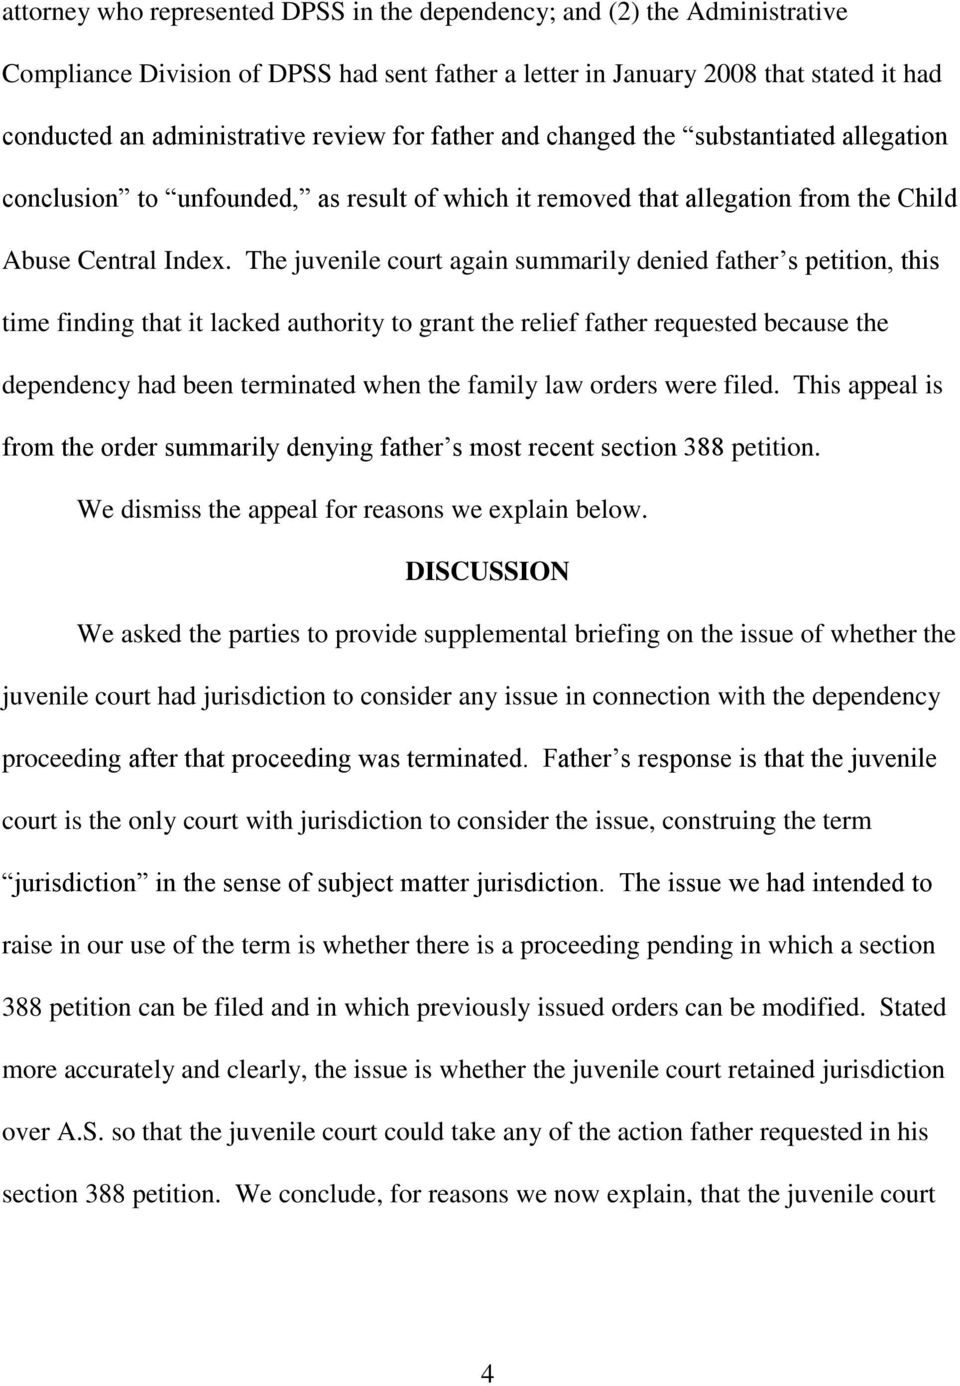 The juvenile court again summarily denied father s petition, this time finding that it lacked authority to grant the relief father requested because the dependency had been terminated when the family